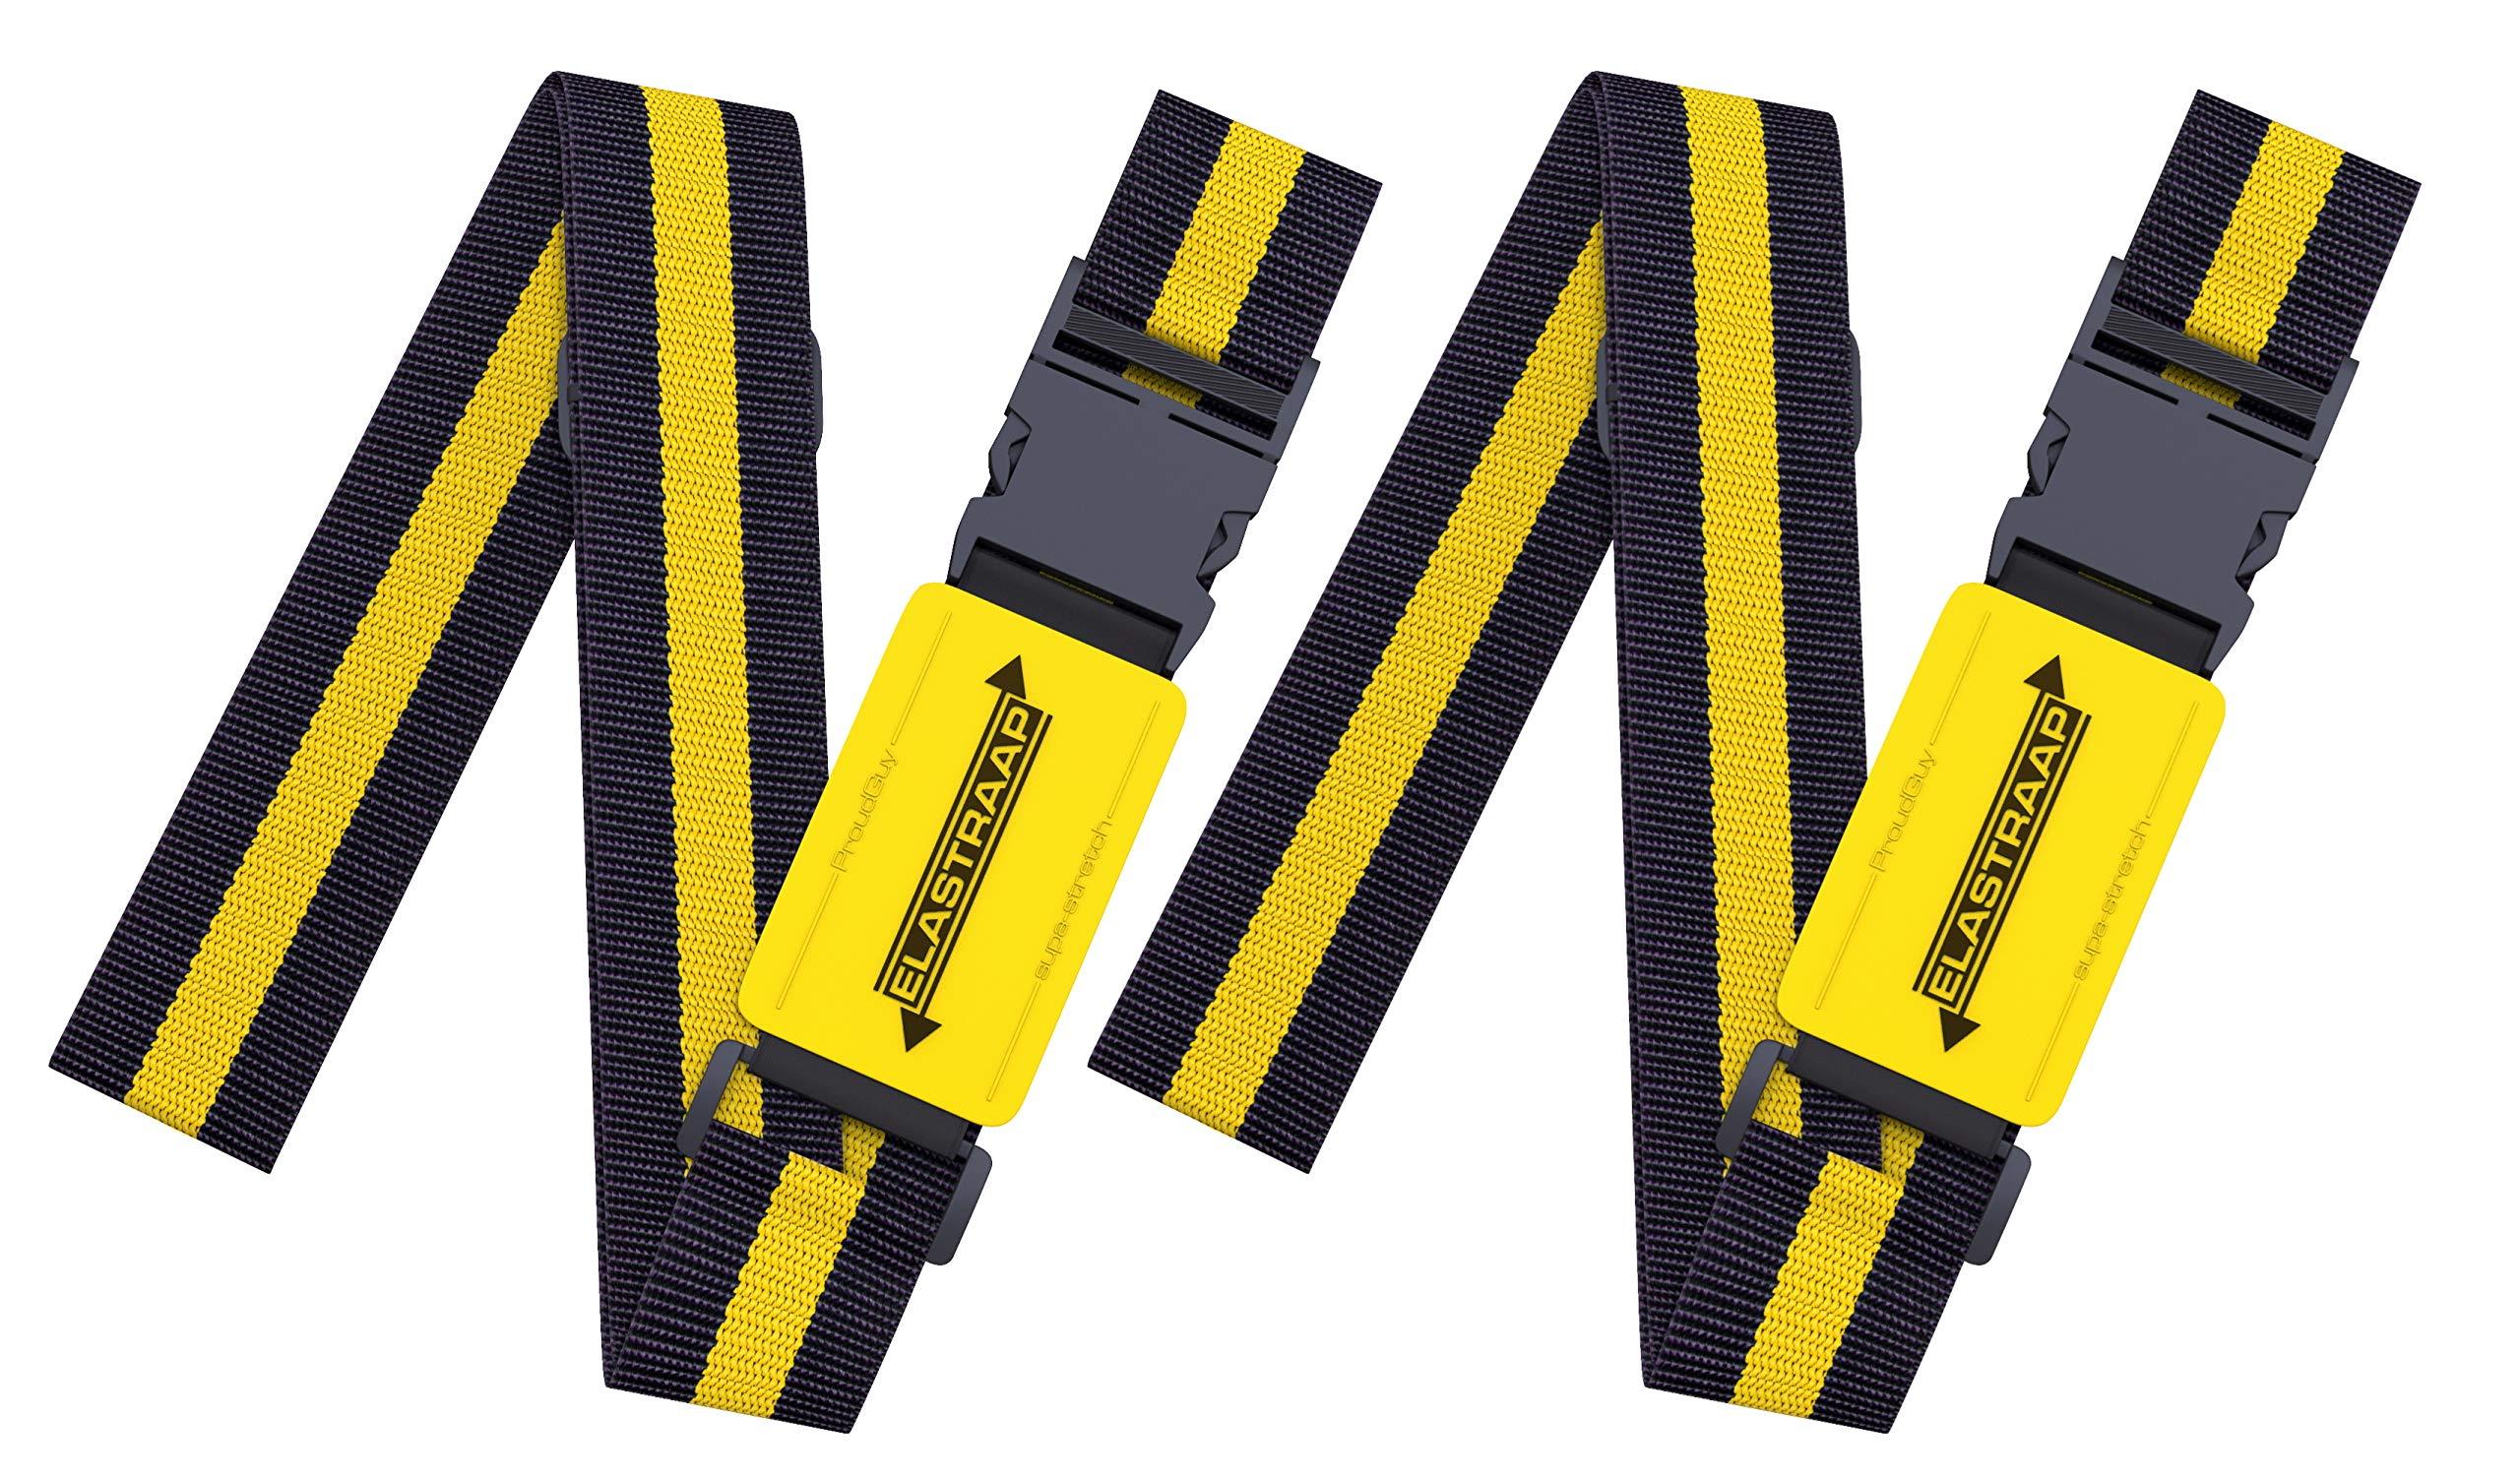 Luggage Straps, Adjustable Non-Slip Baggage Belts- Suitcase Bands For Travel Bag (2 Straps, Yellow Stripe 2pk) by ProudGuy